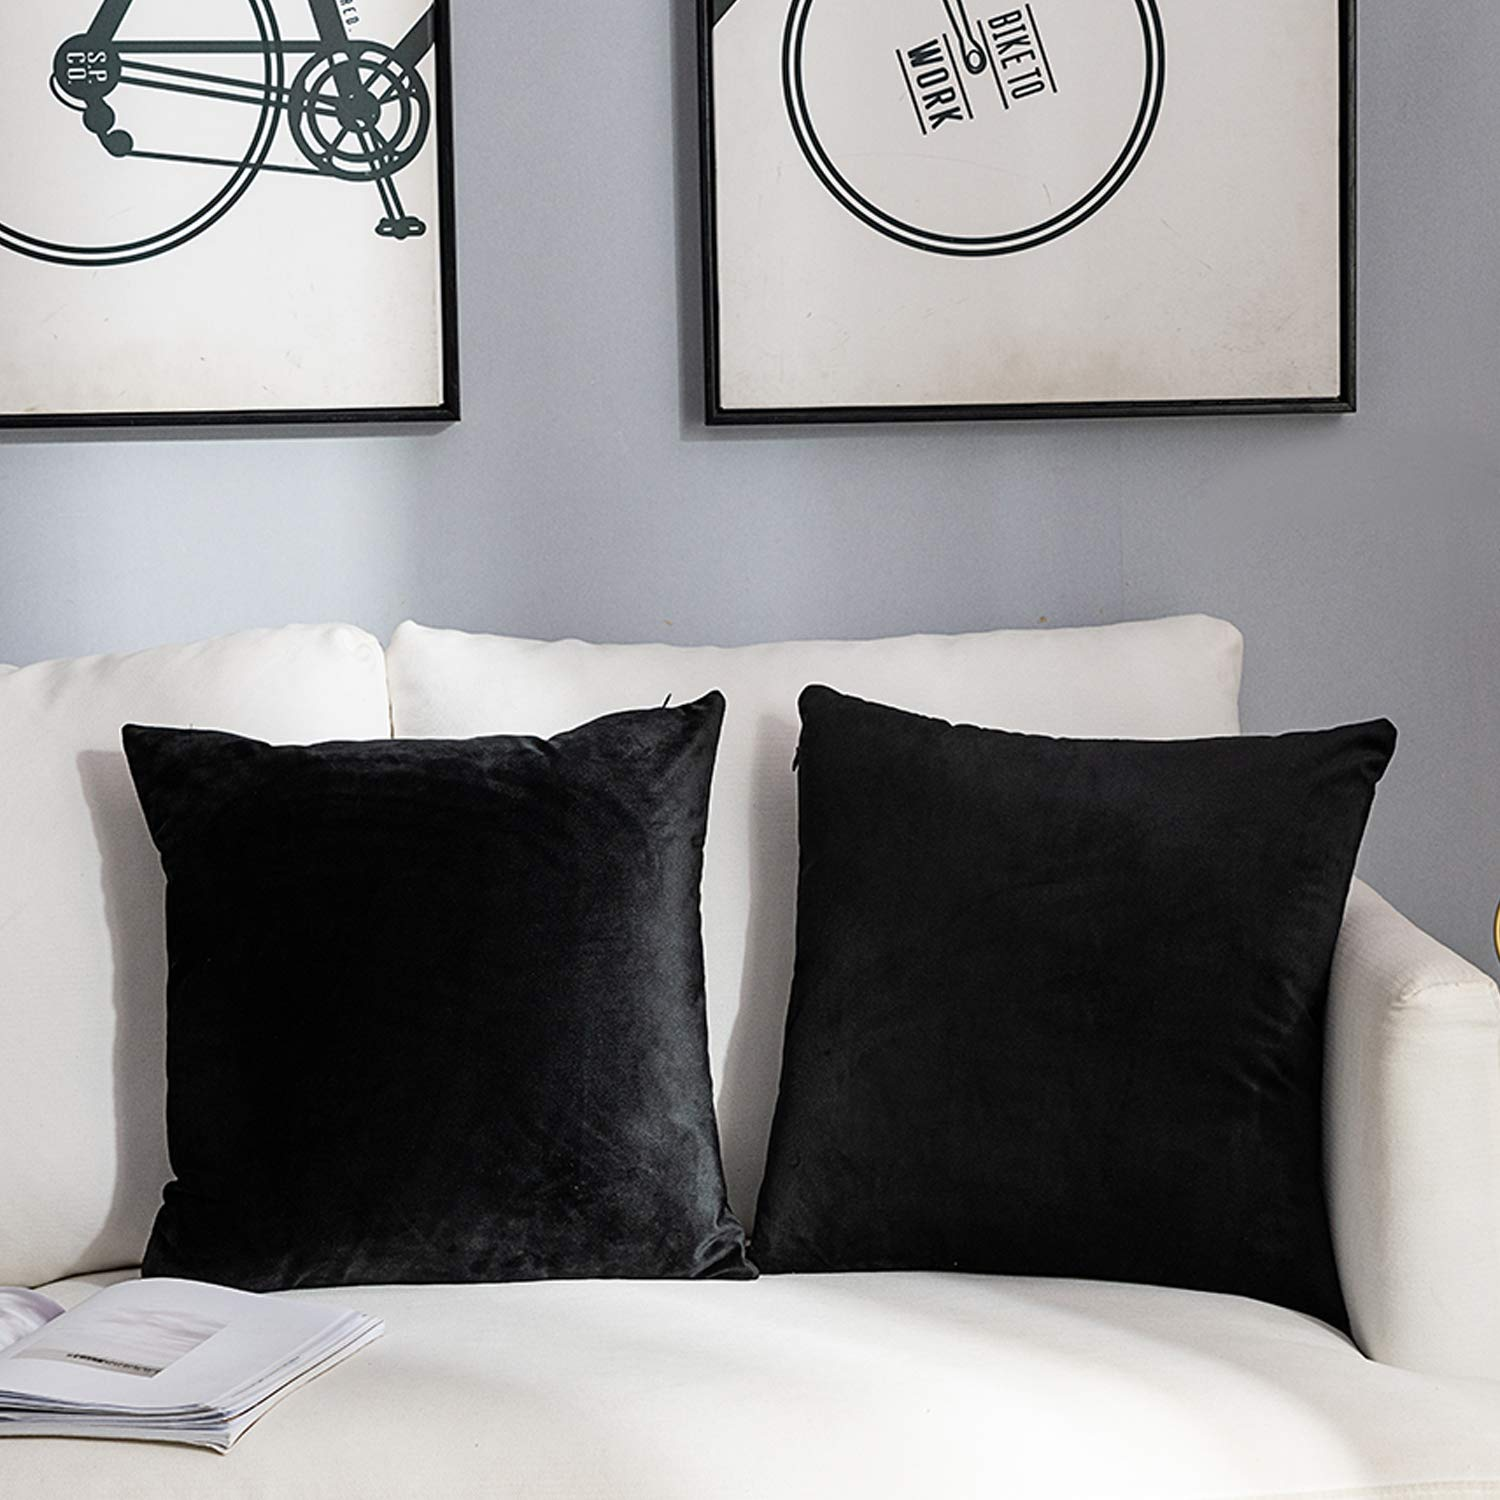 NANPIPER Set of 2 Velvet Soft Decorative Cushion Throw Pillow Covers 20x20 Inch/50x50 cm Cozy Solid Velvet Square Pillowcase Cushion Covers Black for Couch and Bed